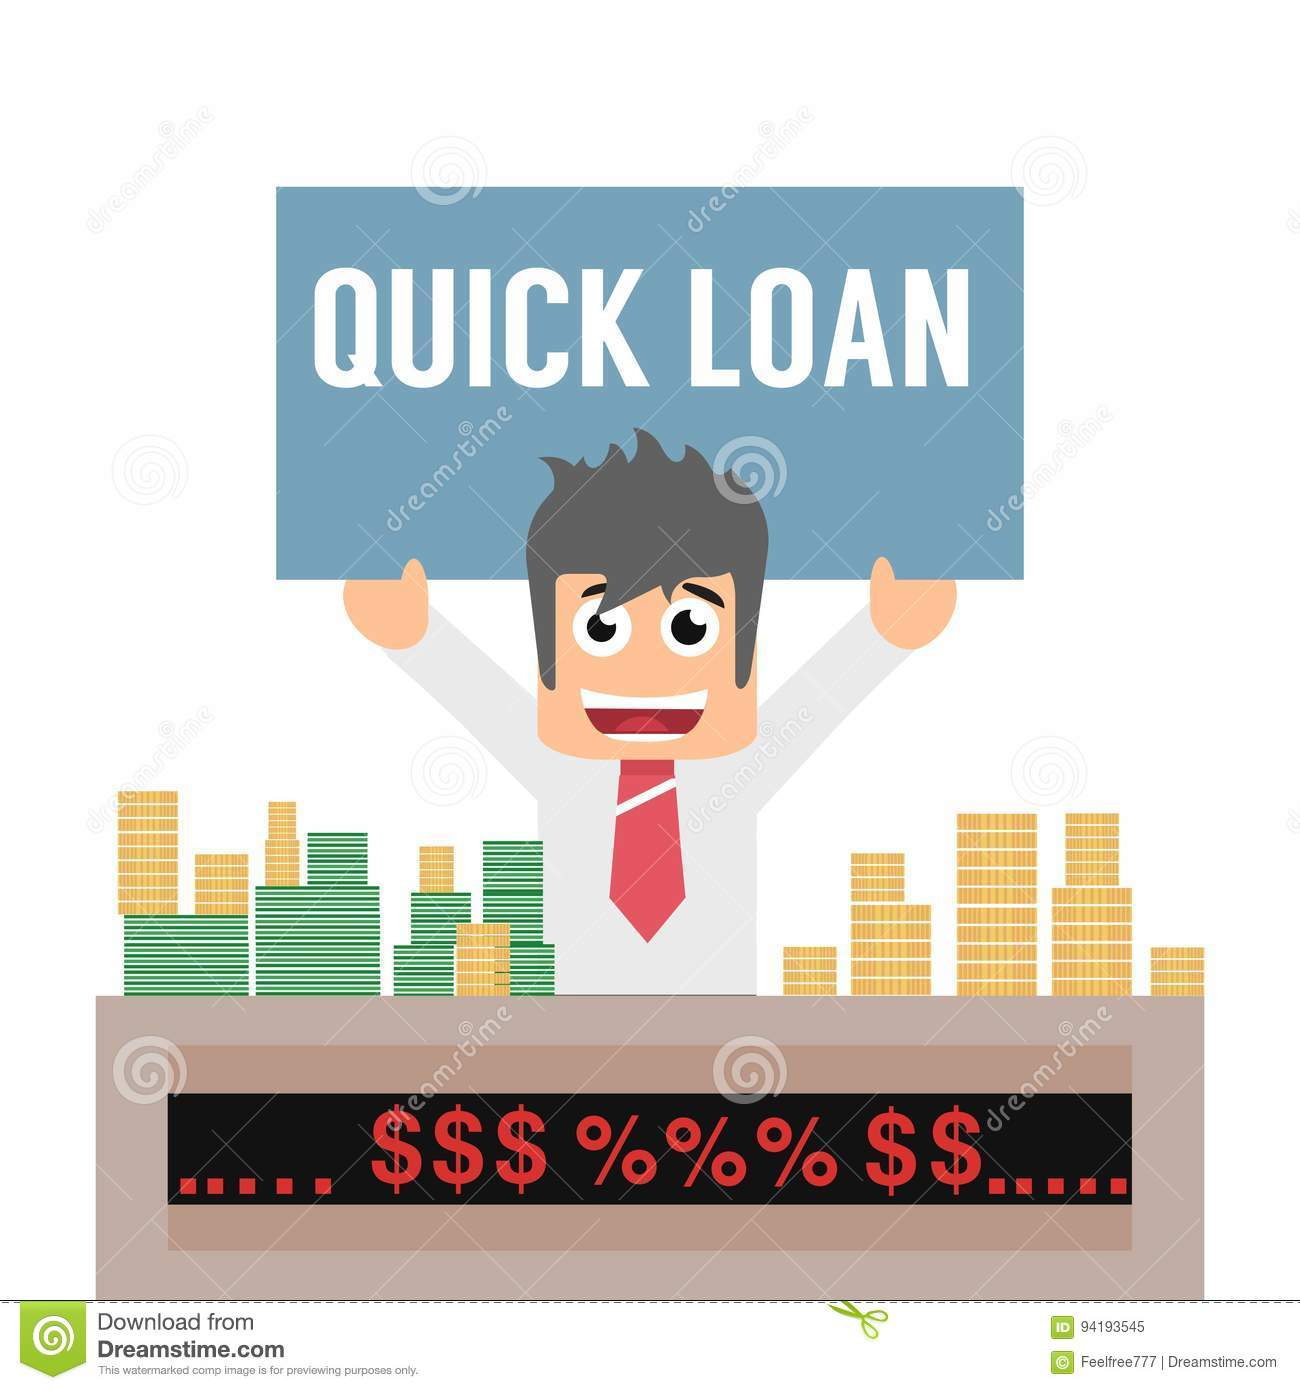 Quick Loan Offer Concept Stock Vector. Illustration Of